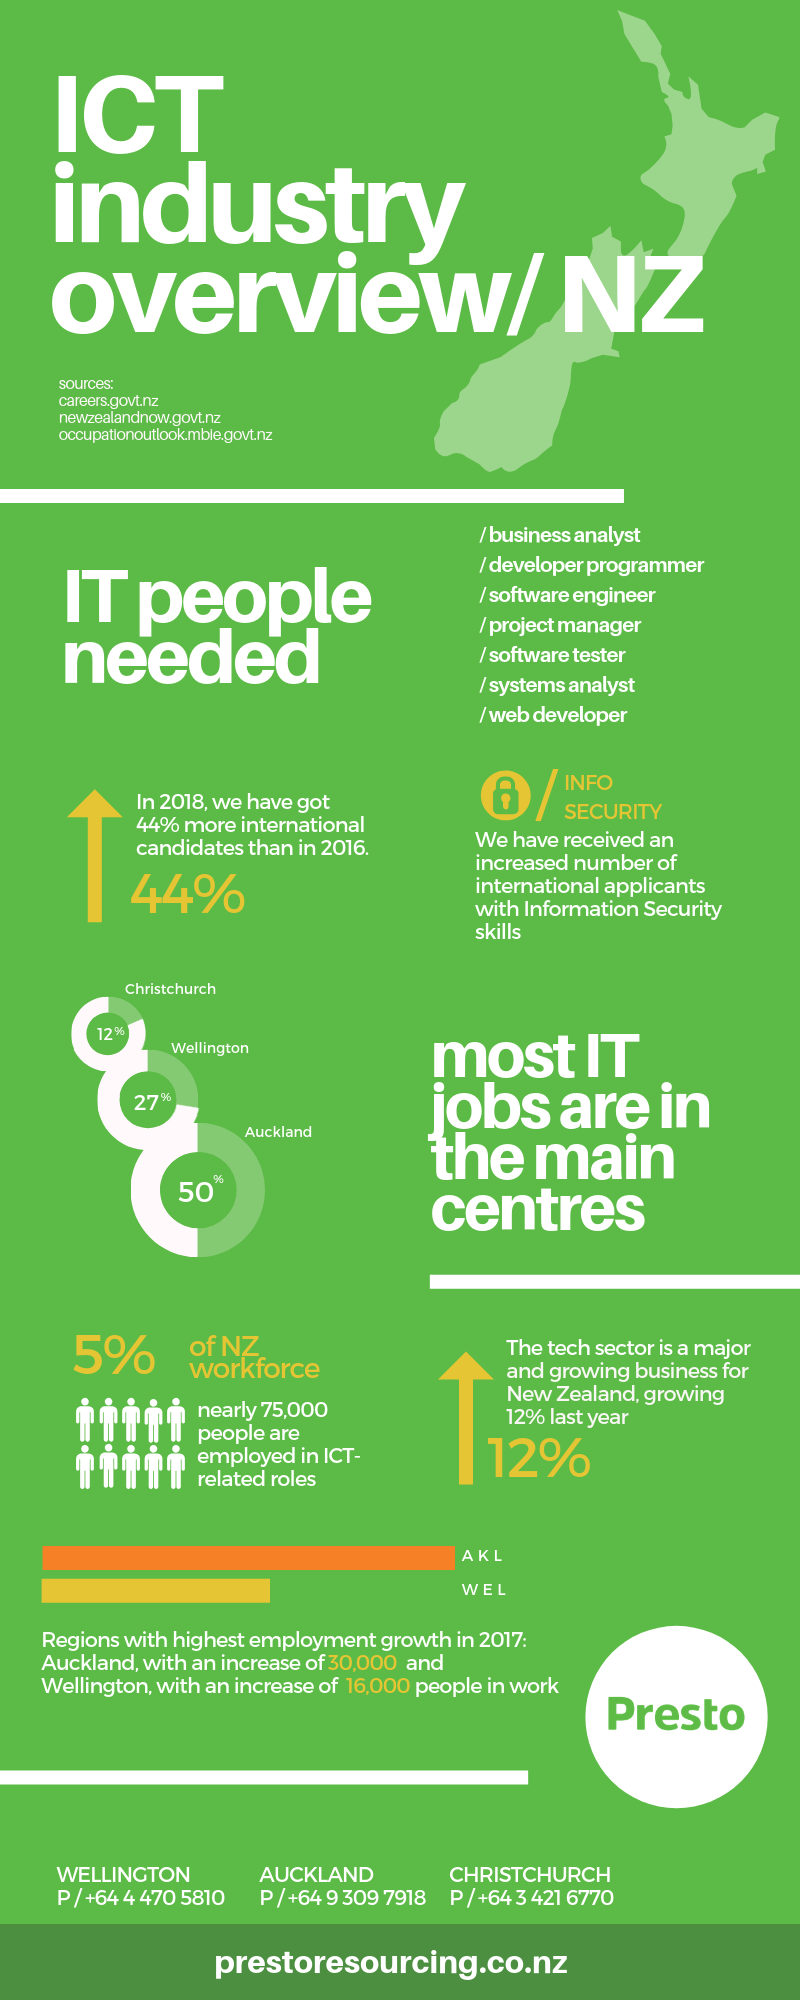 Presto Infographic ICT industry overview in NZ